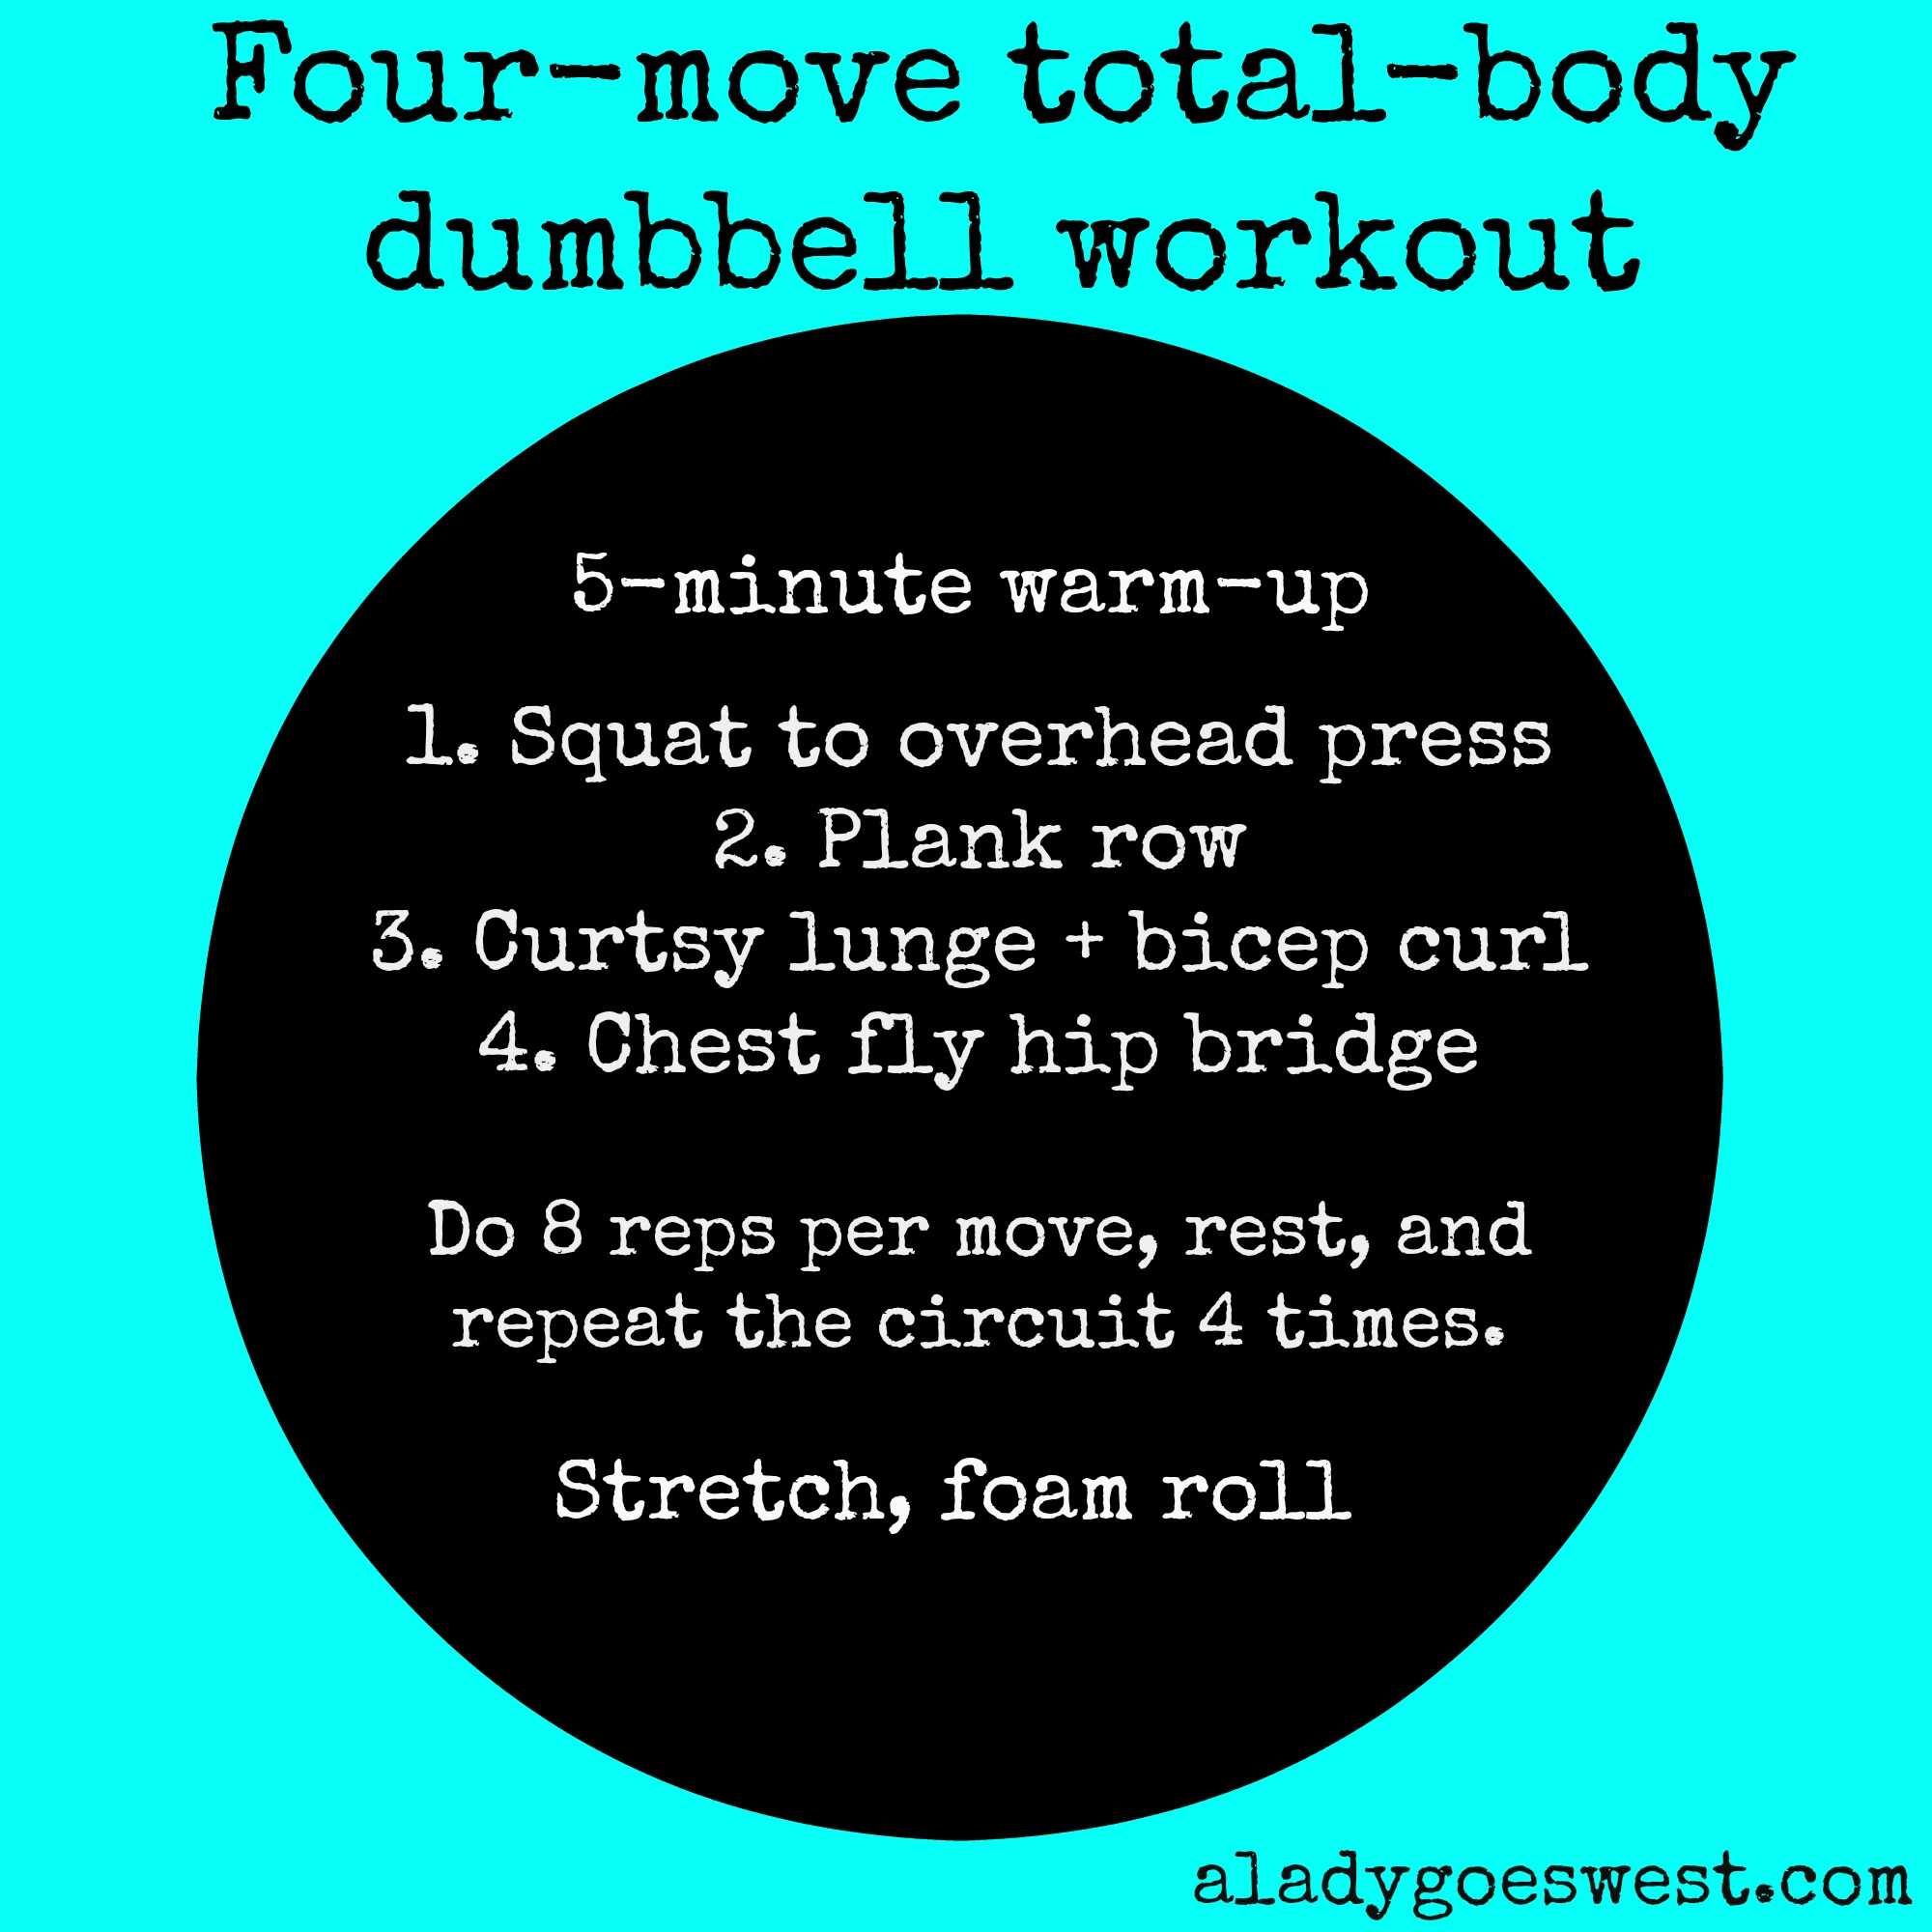 Four-move total-body dumbbell workout